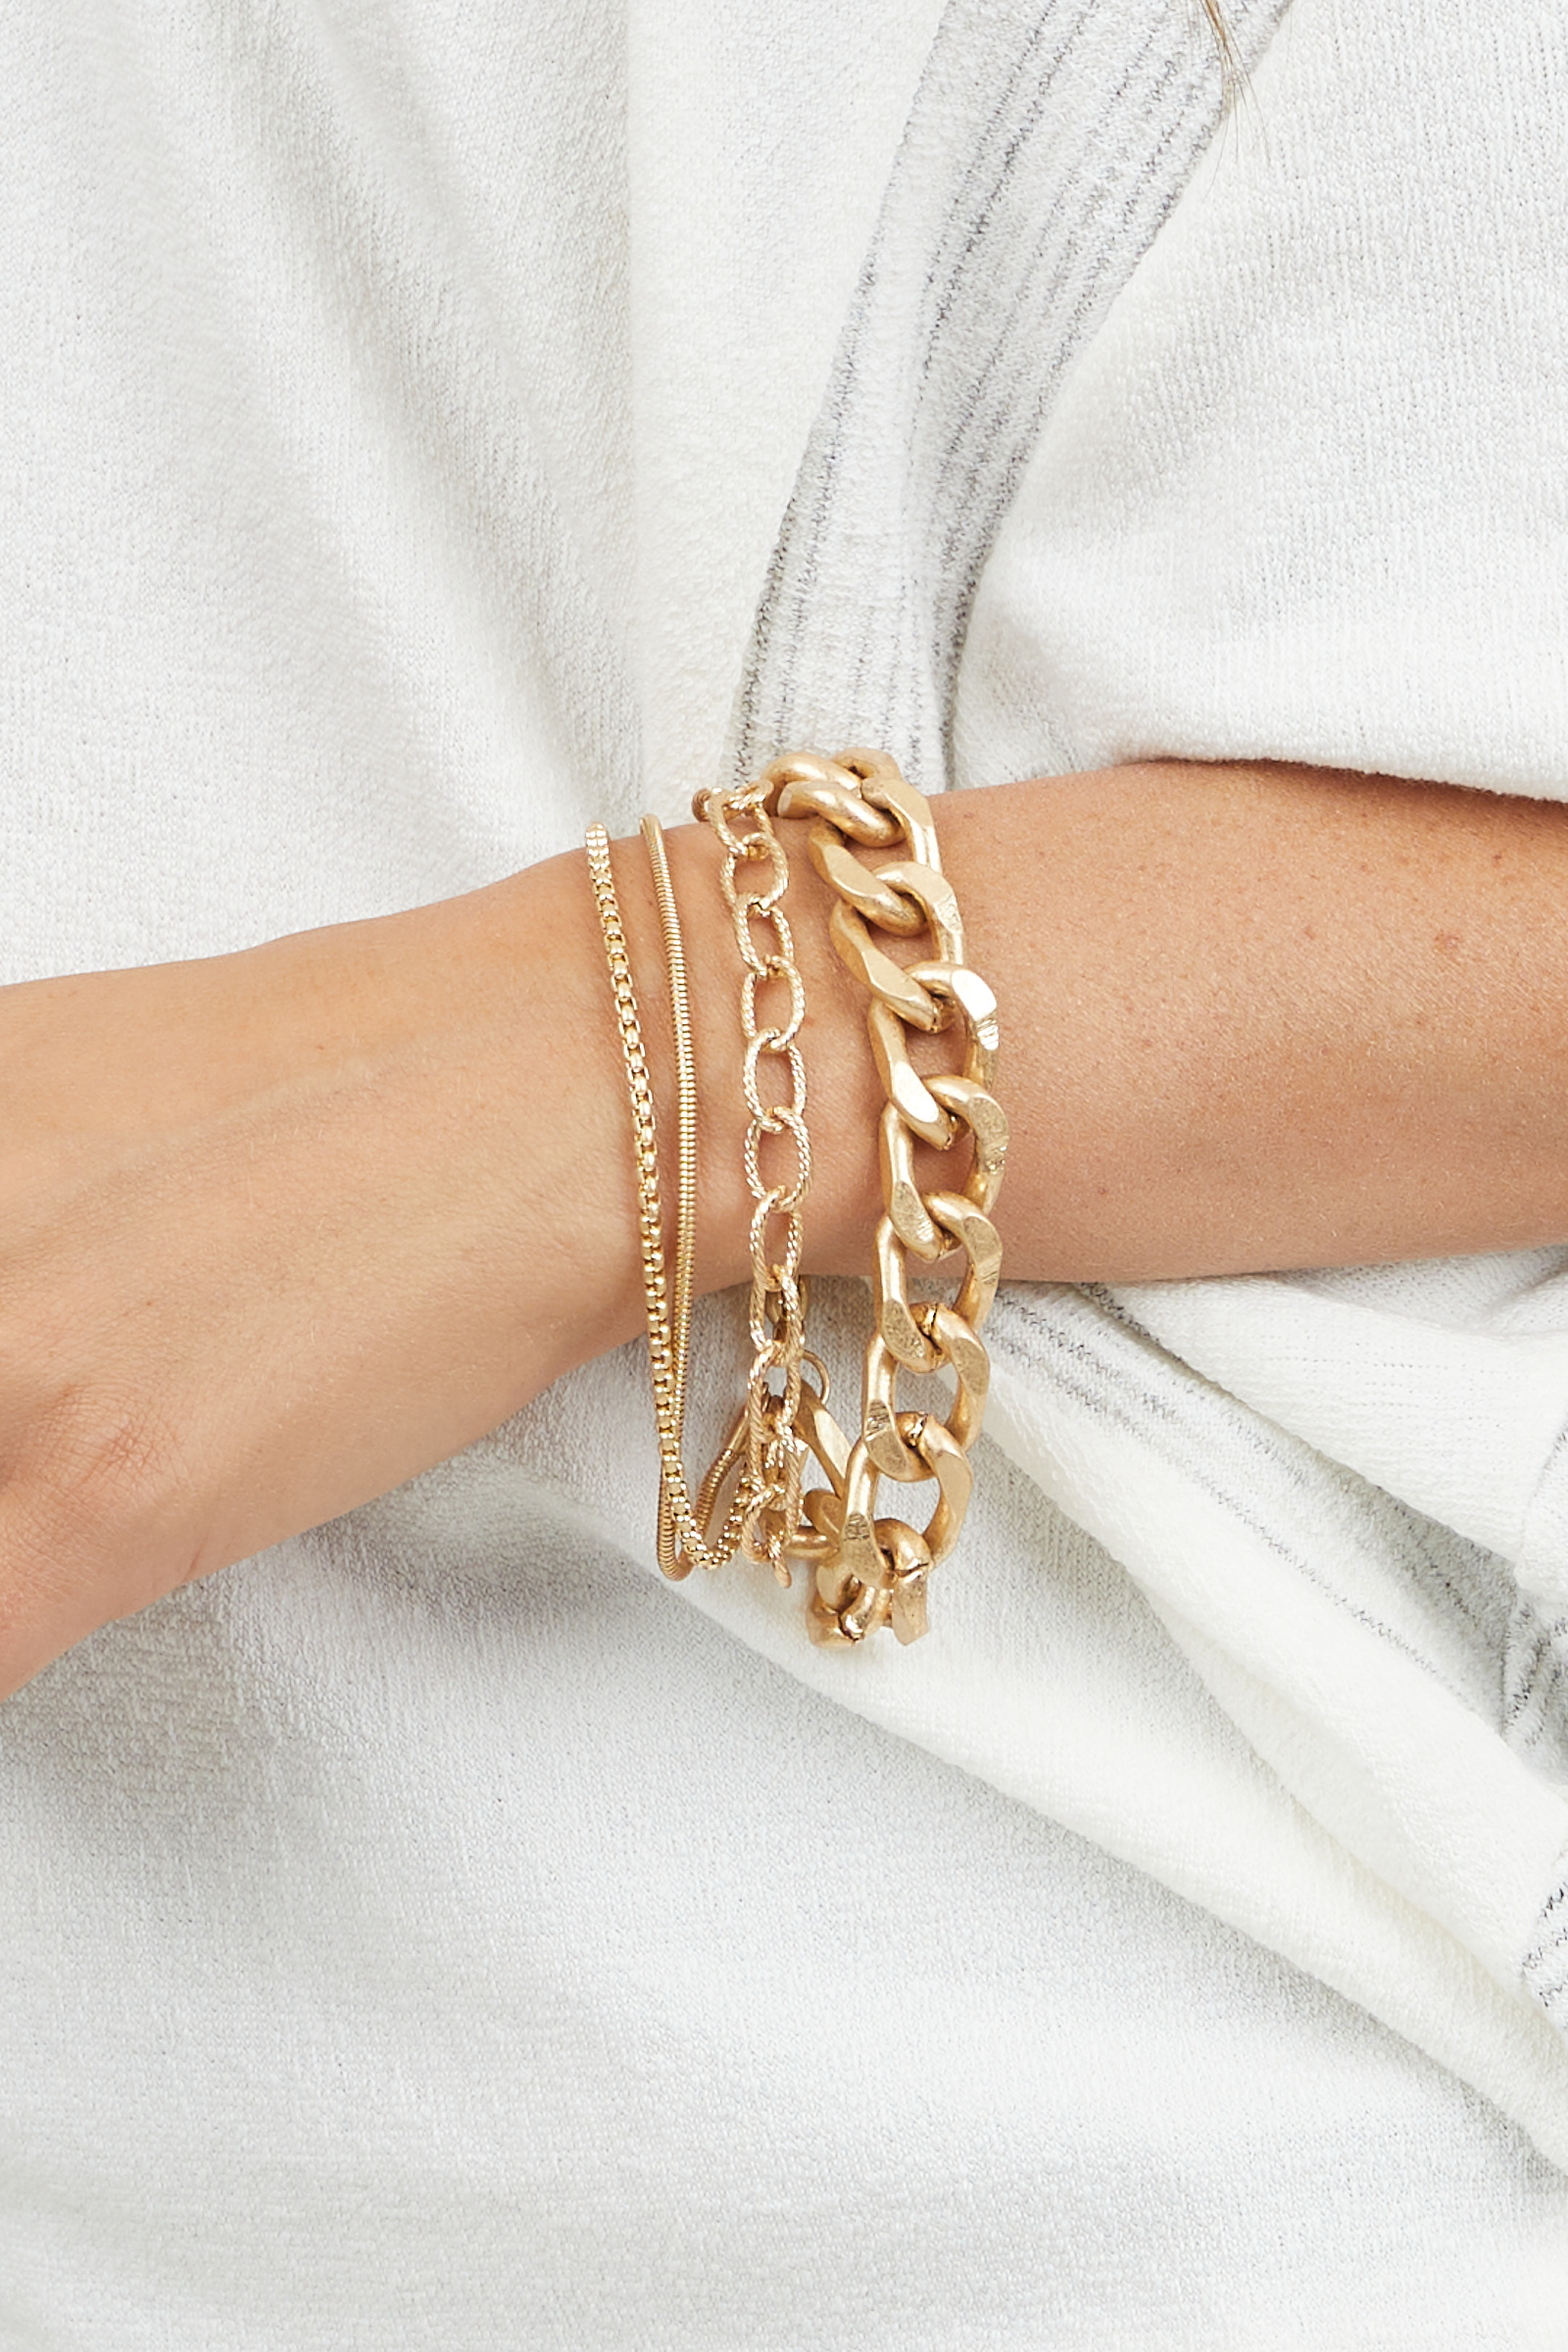 Gold Chain Layered Bracelet with Various Chain Styles